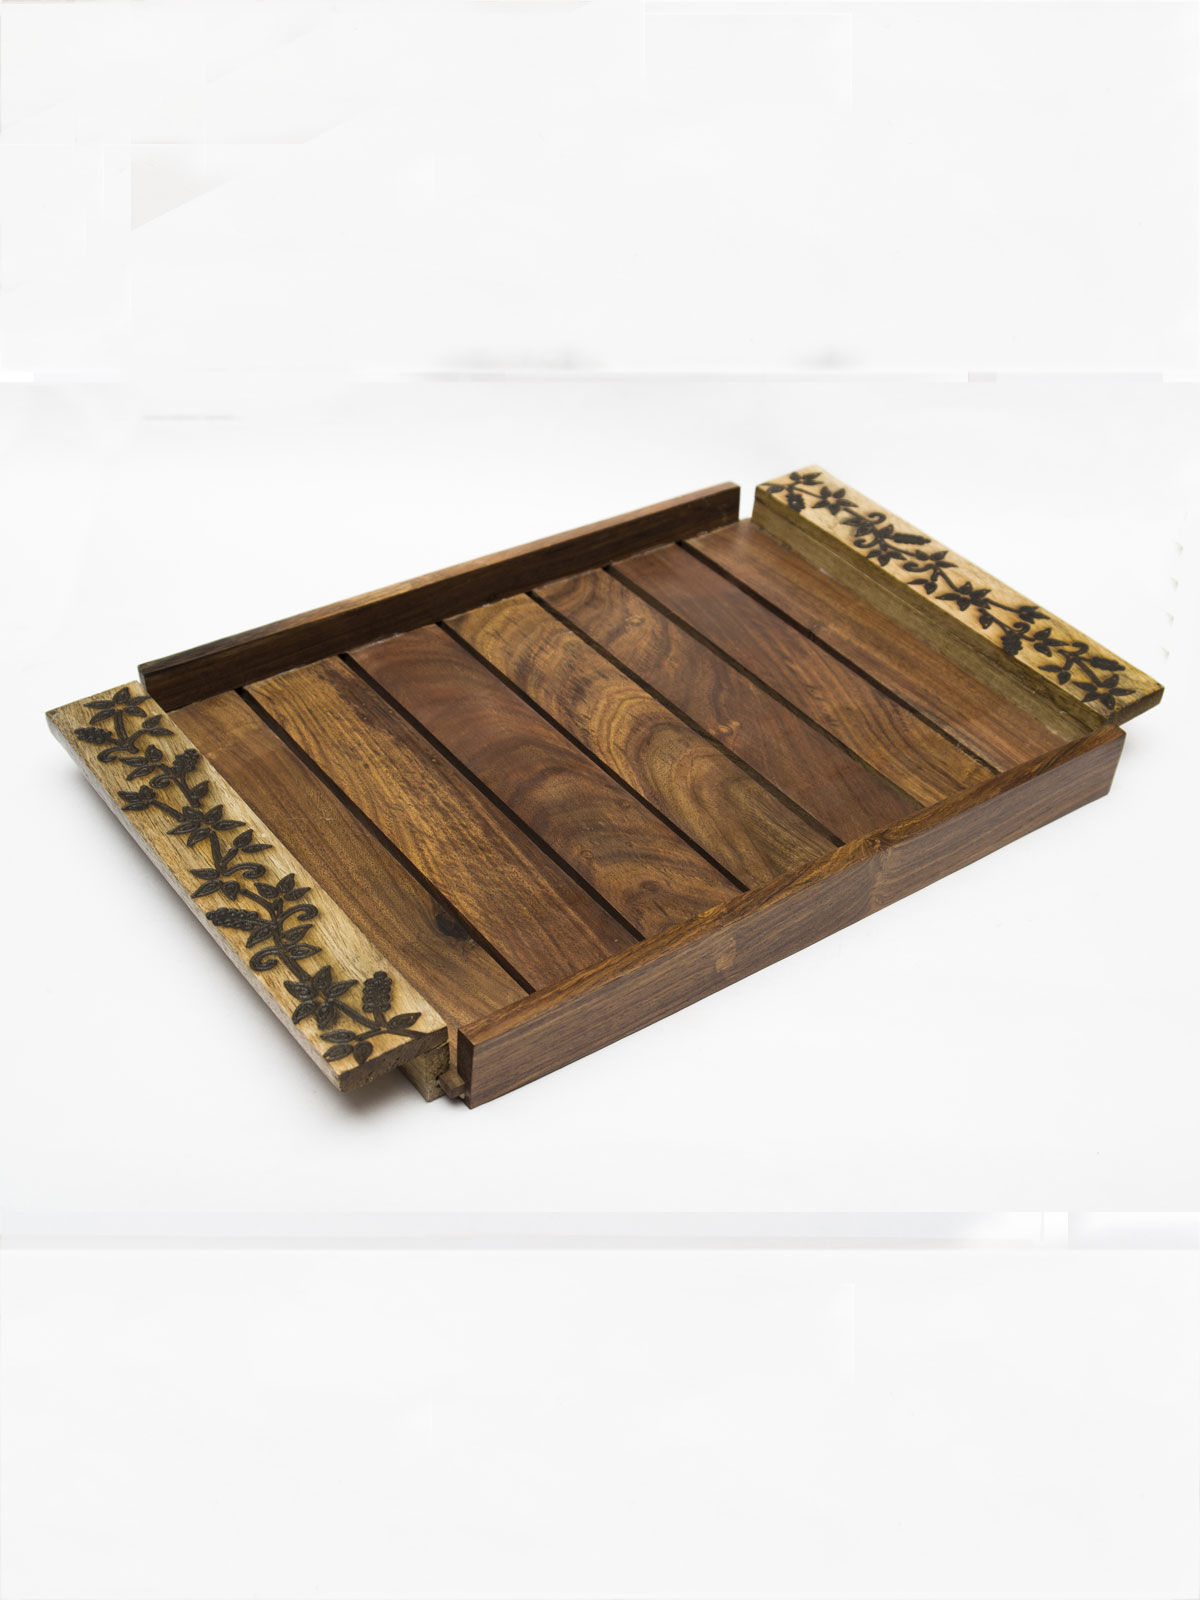 Slatted floral design tray